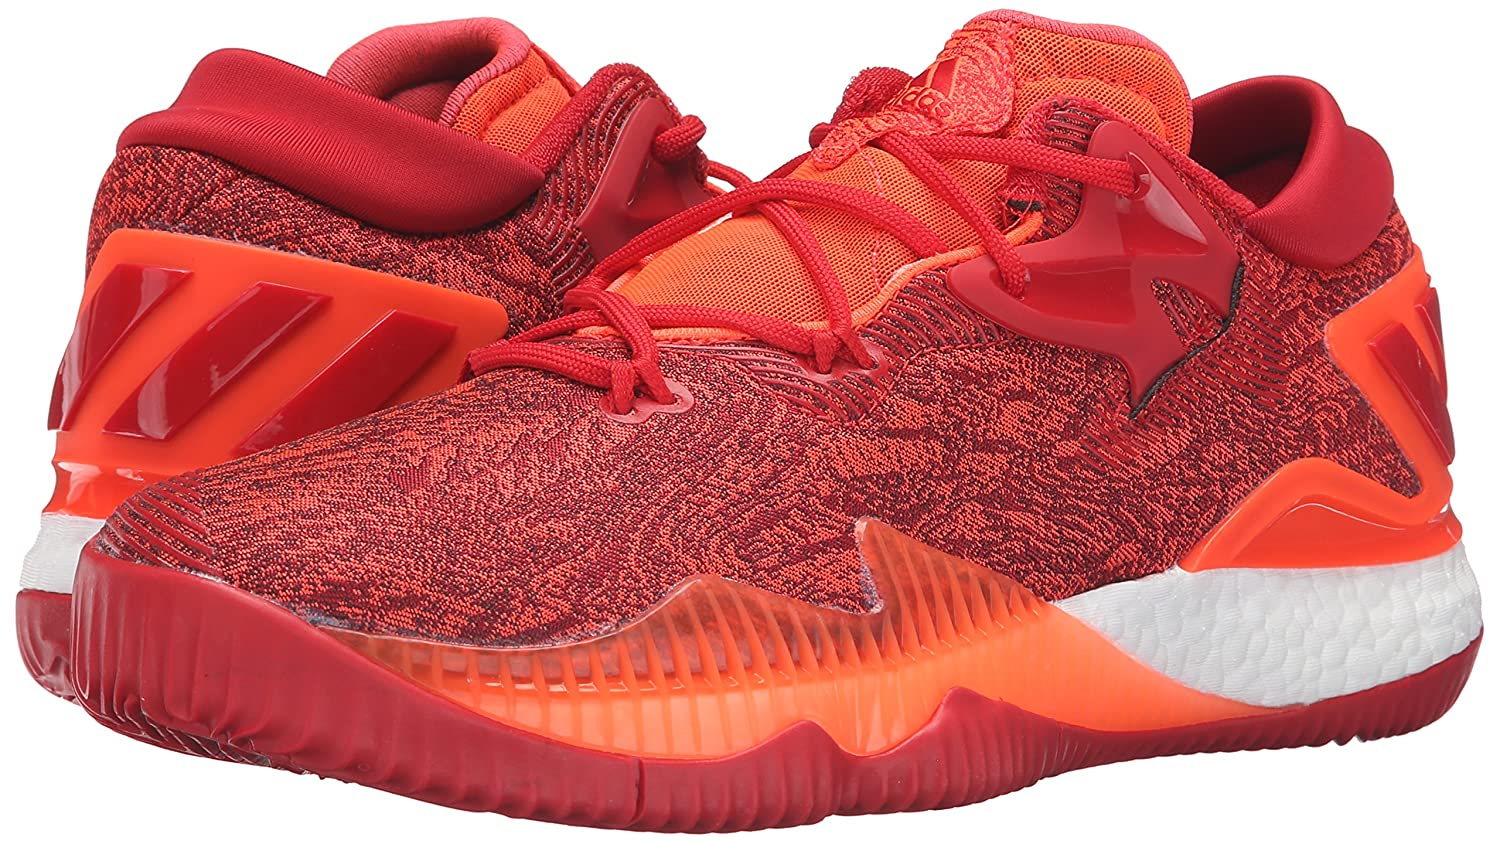 Adidas Adidas Adidas Performance Herren Crazylight Boost Low 2016 Basketball Schuh, Rot (Solar rot Light Scarlet Infrarot), 47 EU D(M) f642dc